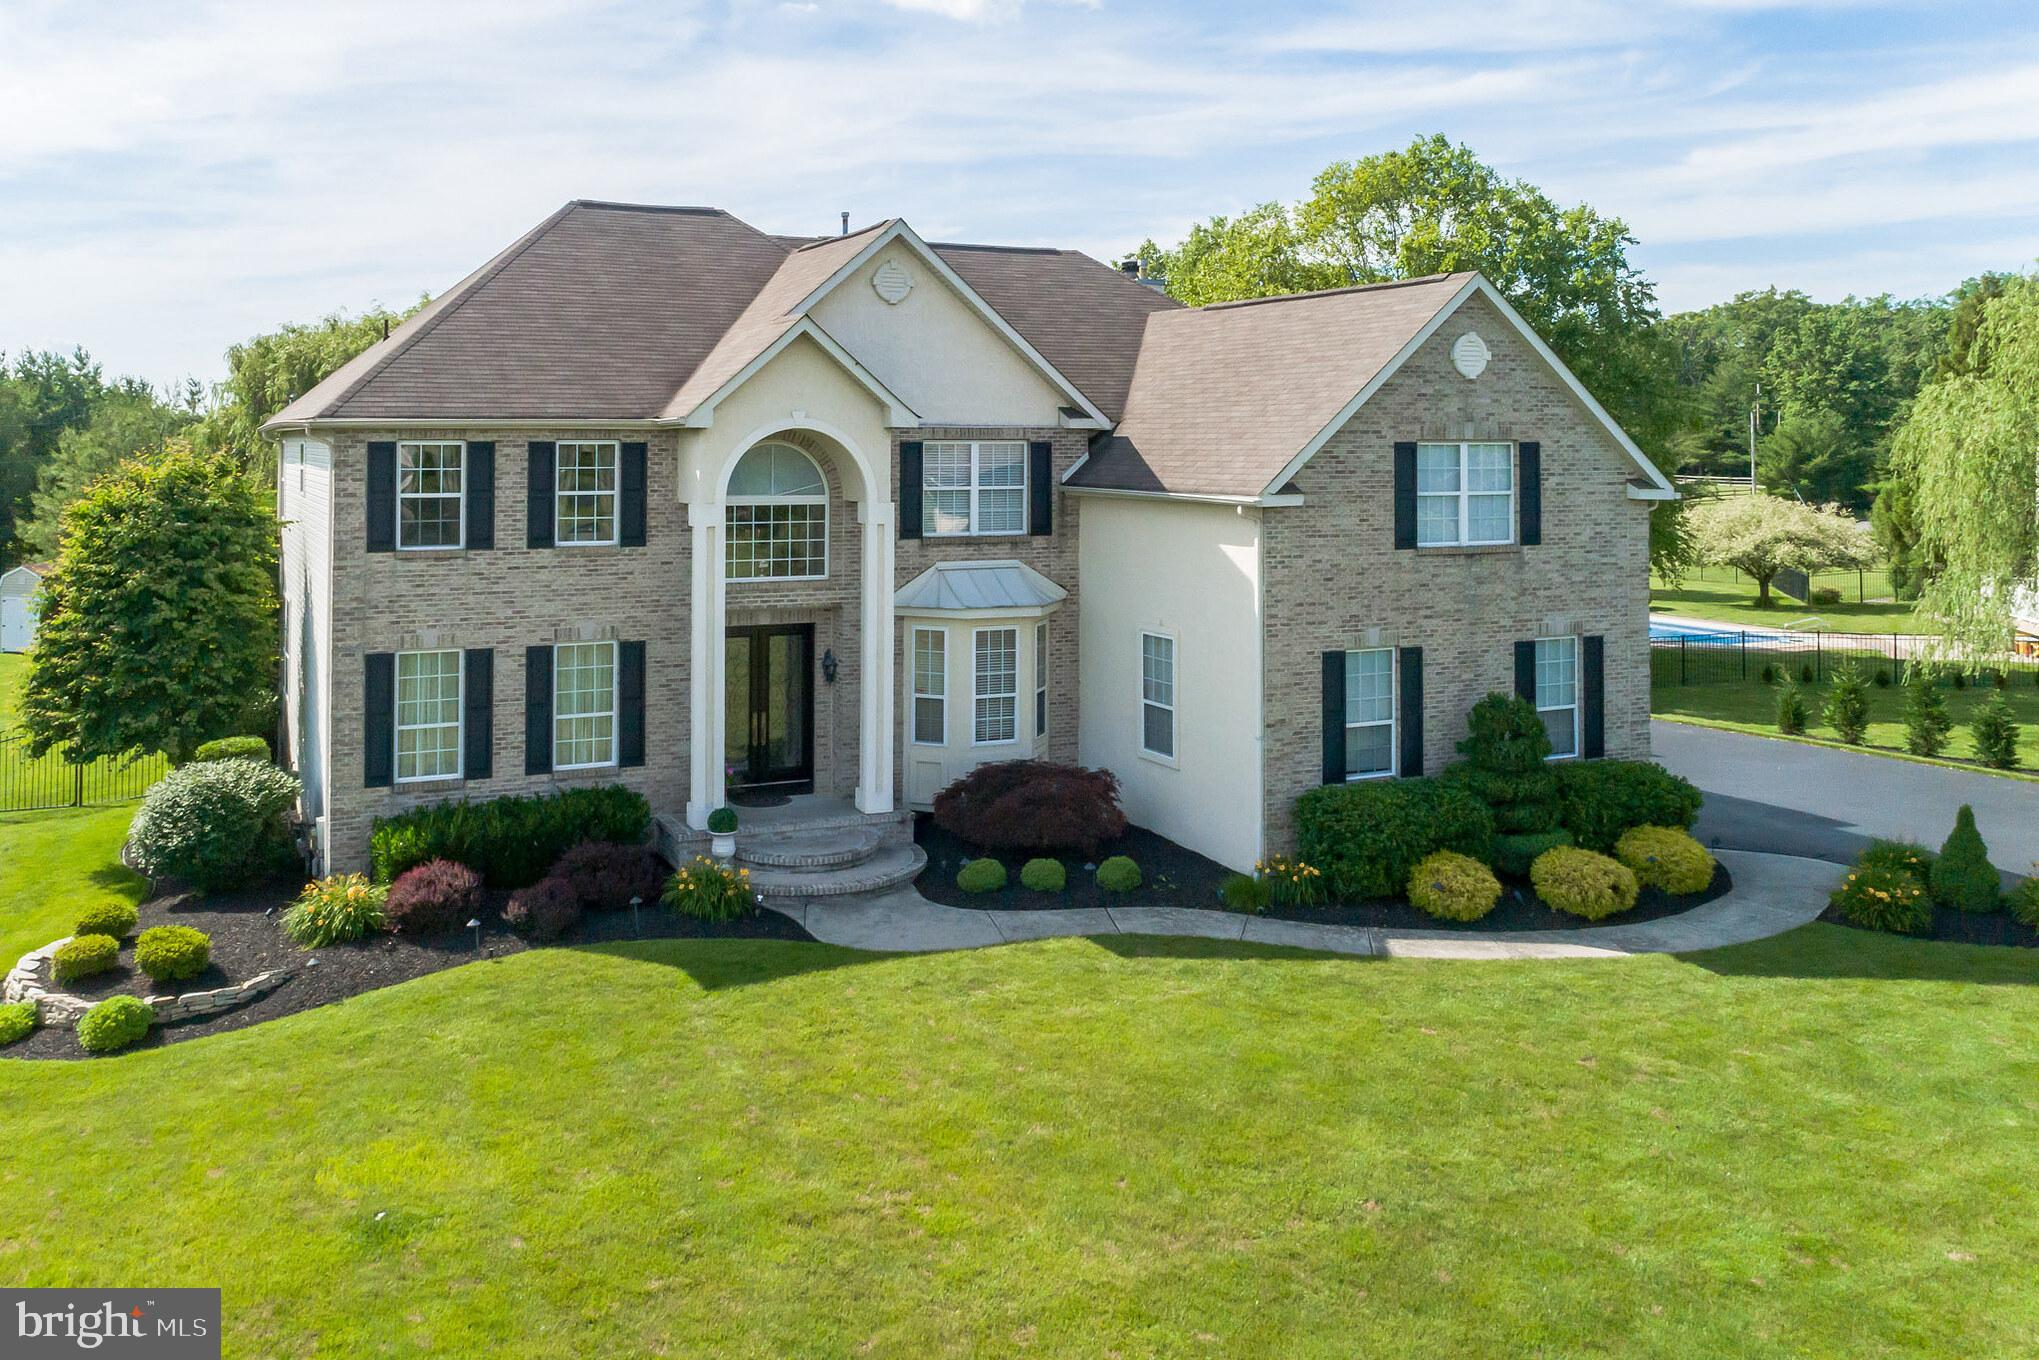 6 CHESTNUT COURT, MULLICA HILL, NJ 08062